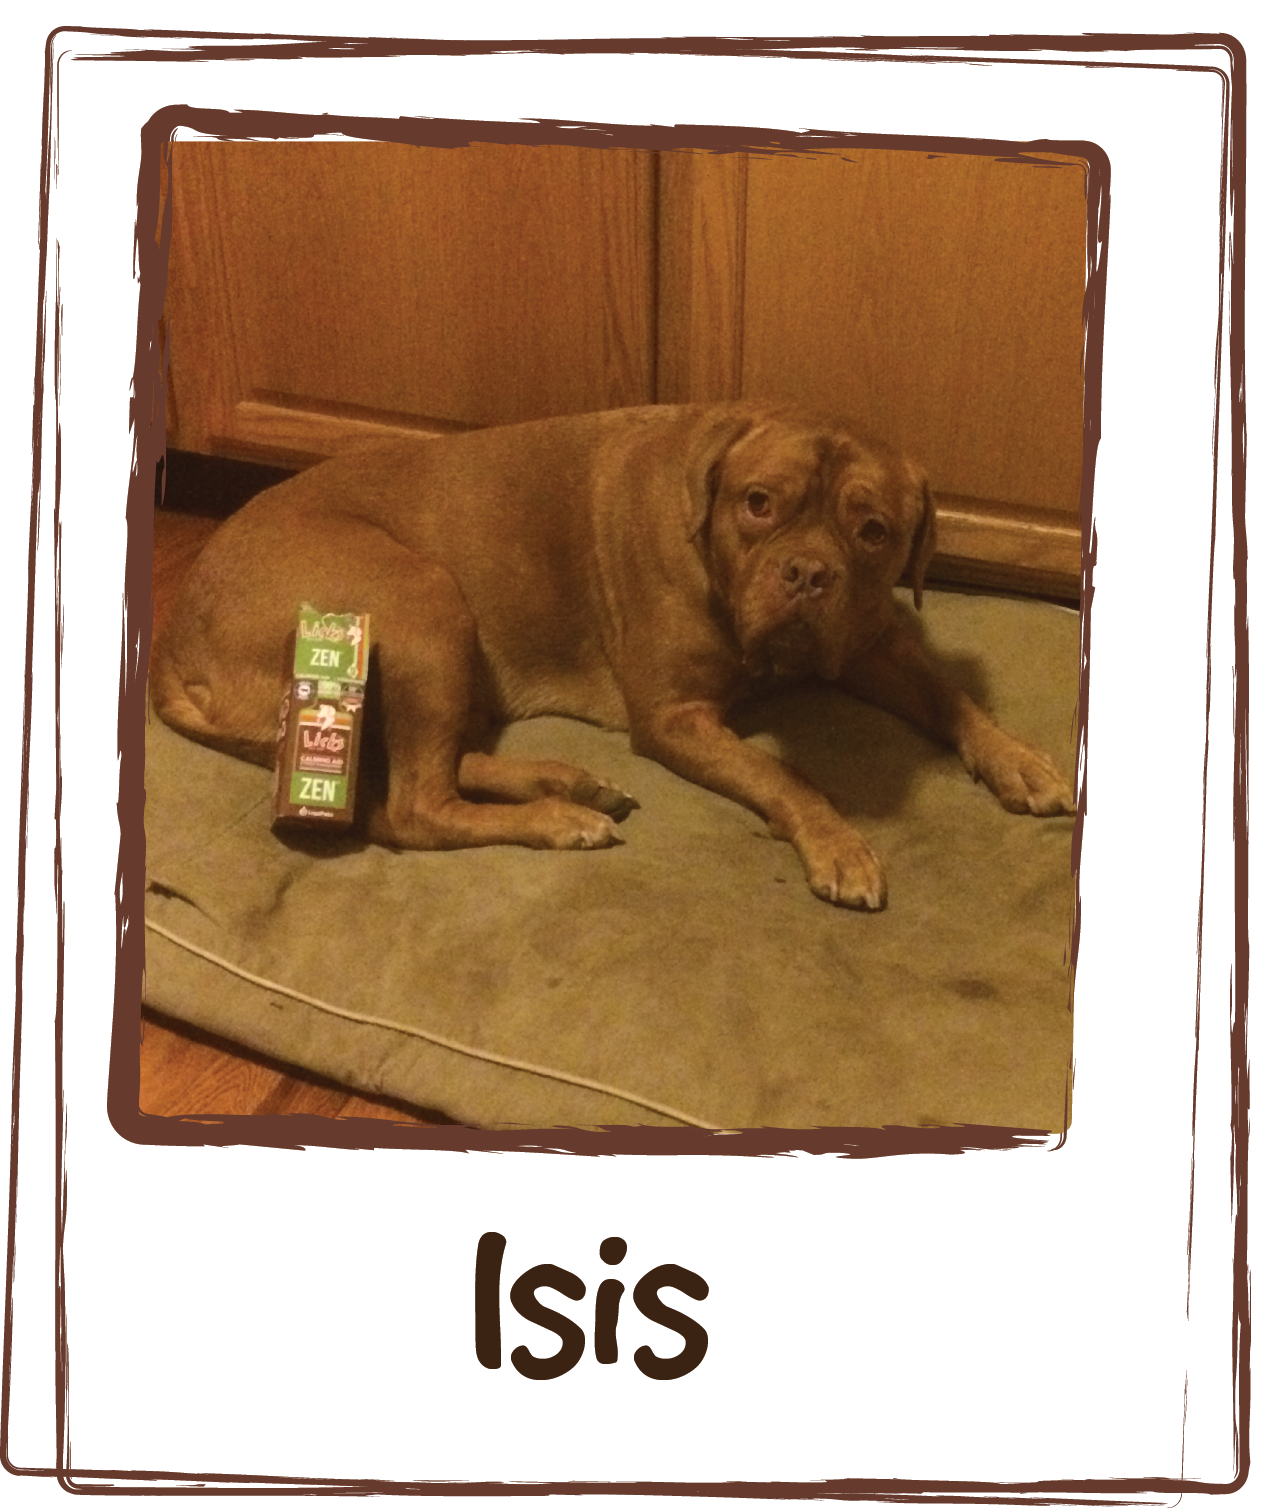 """""""My name is Isis and the world is very scary for me. I've gotten better about a lot of stuff but storms are still terrifying. Tonight there isn't a storm, Dad is burning dinner and the smoke detectors are clearly trying to kill me. Zen to the rescue. I know when my Mom gives me Zen, I feel better. Let the calm kick in and I'll get my Zen on."""""""